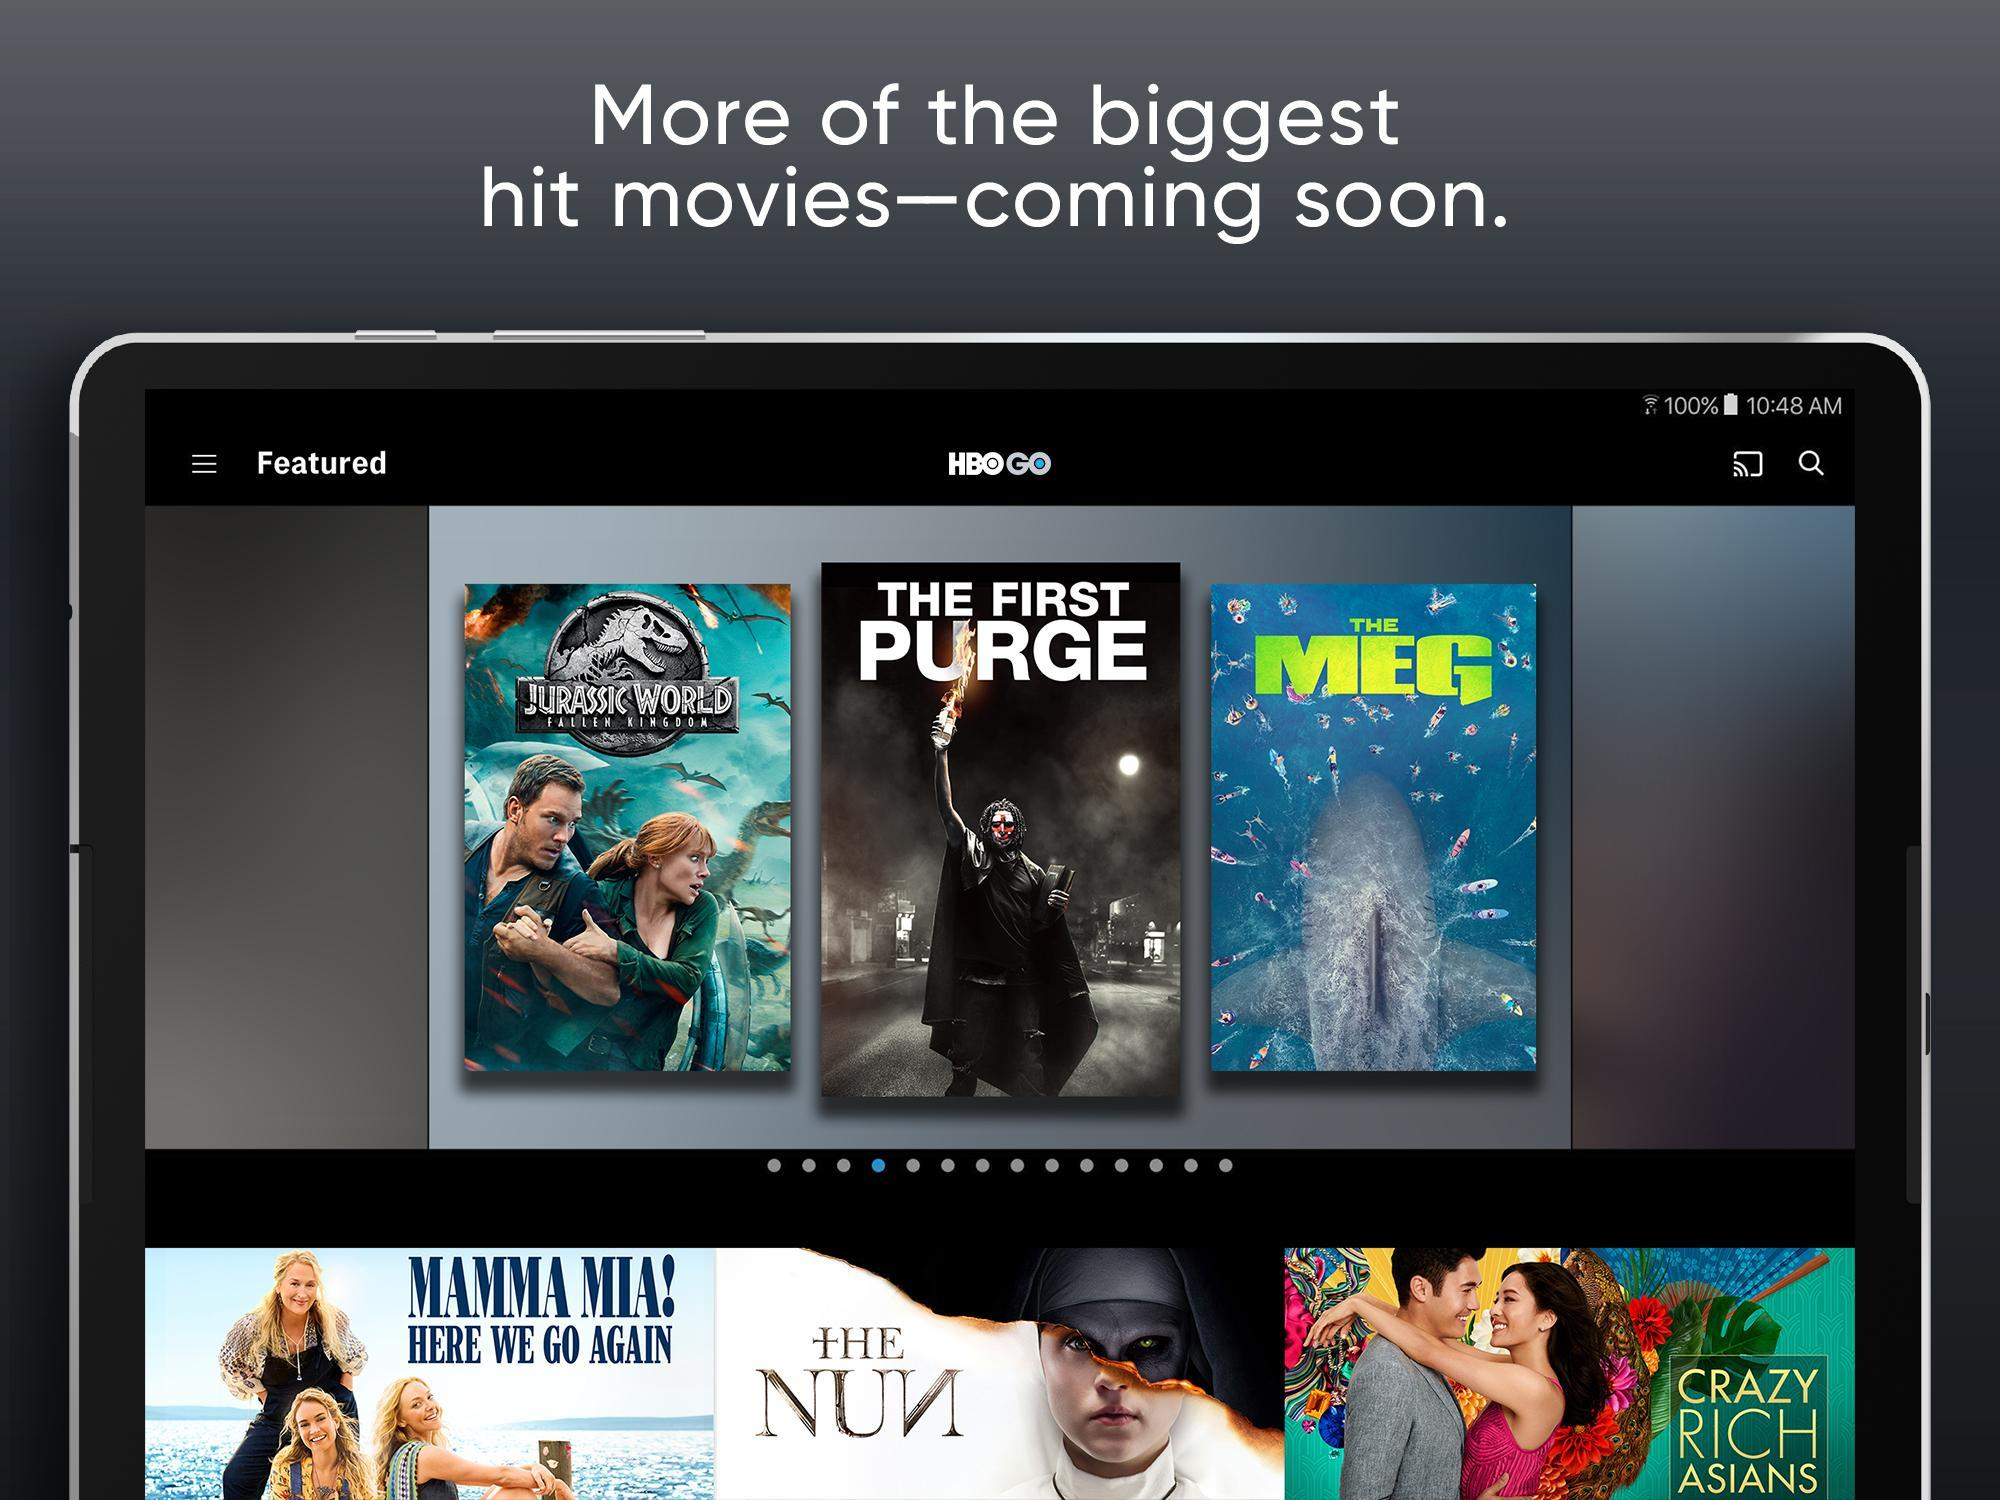 how do i download the hbo go app on my samsung smart tv